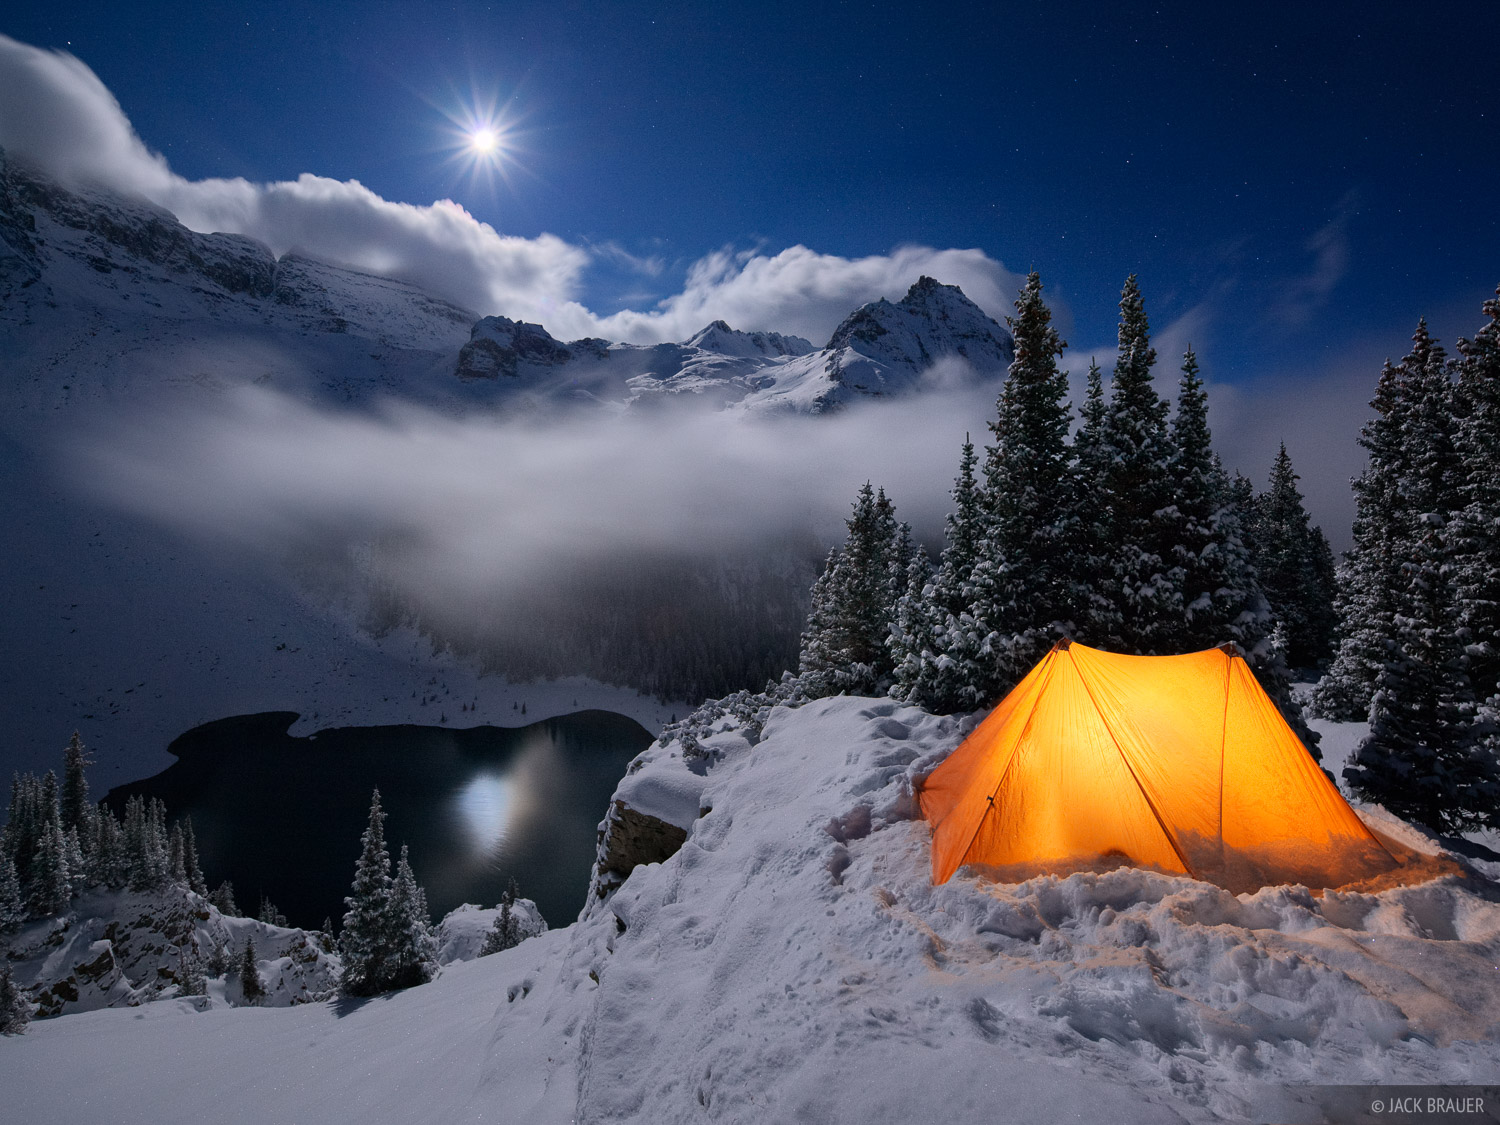 Blue Lakes, Sneffels, San Juan Mountains, Colorado, winter, camp, tent, snow, moonlight, photo